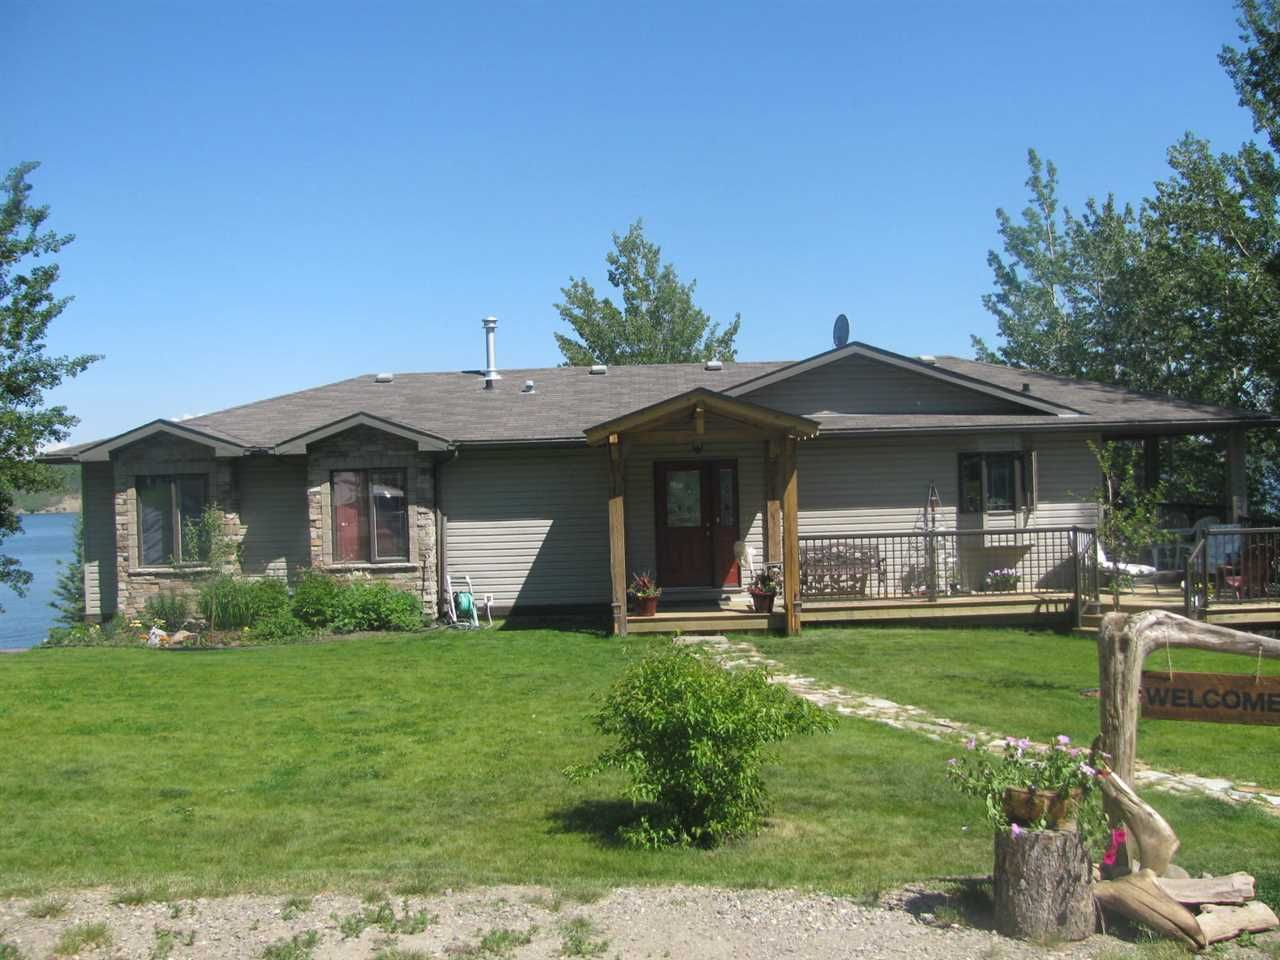 Main Photo: 13759 GOLF COURSE Road: Charlie Lake Manufactured Home for sale (Fort St. John (Zone 60))  : MLS®# R2453494